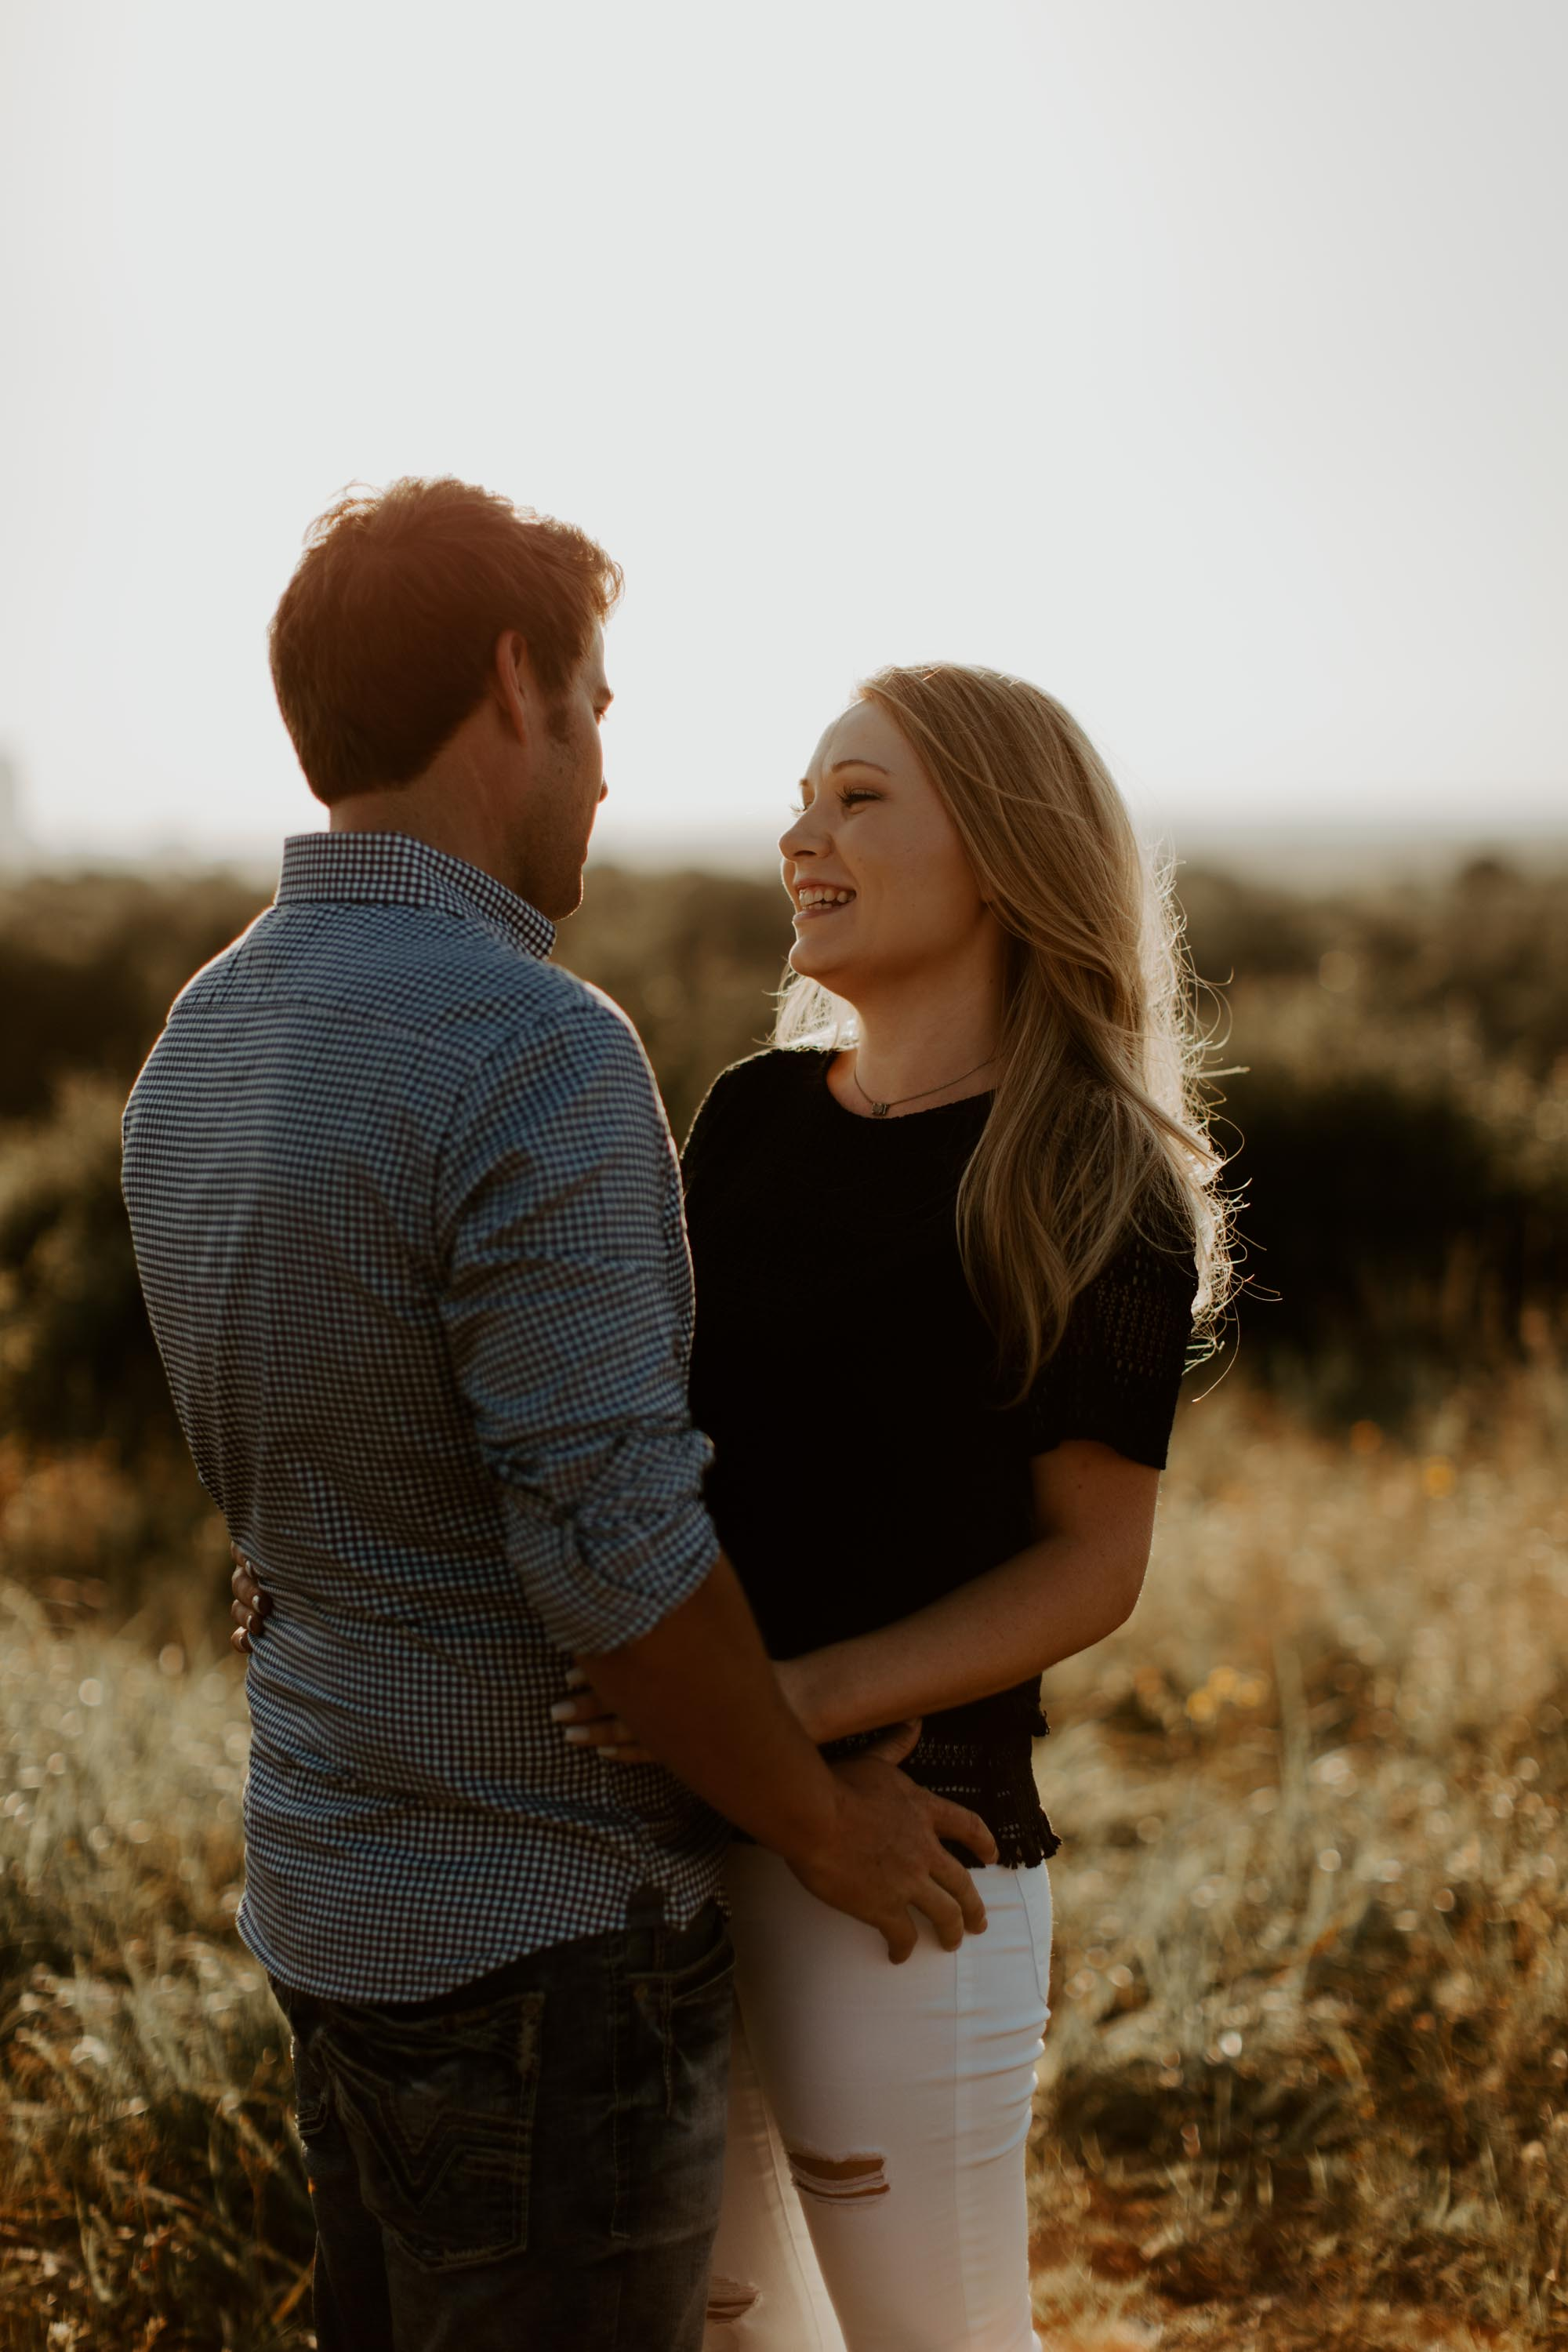 golden hour photo of engaged couple at a park